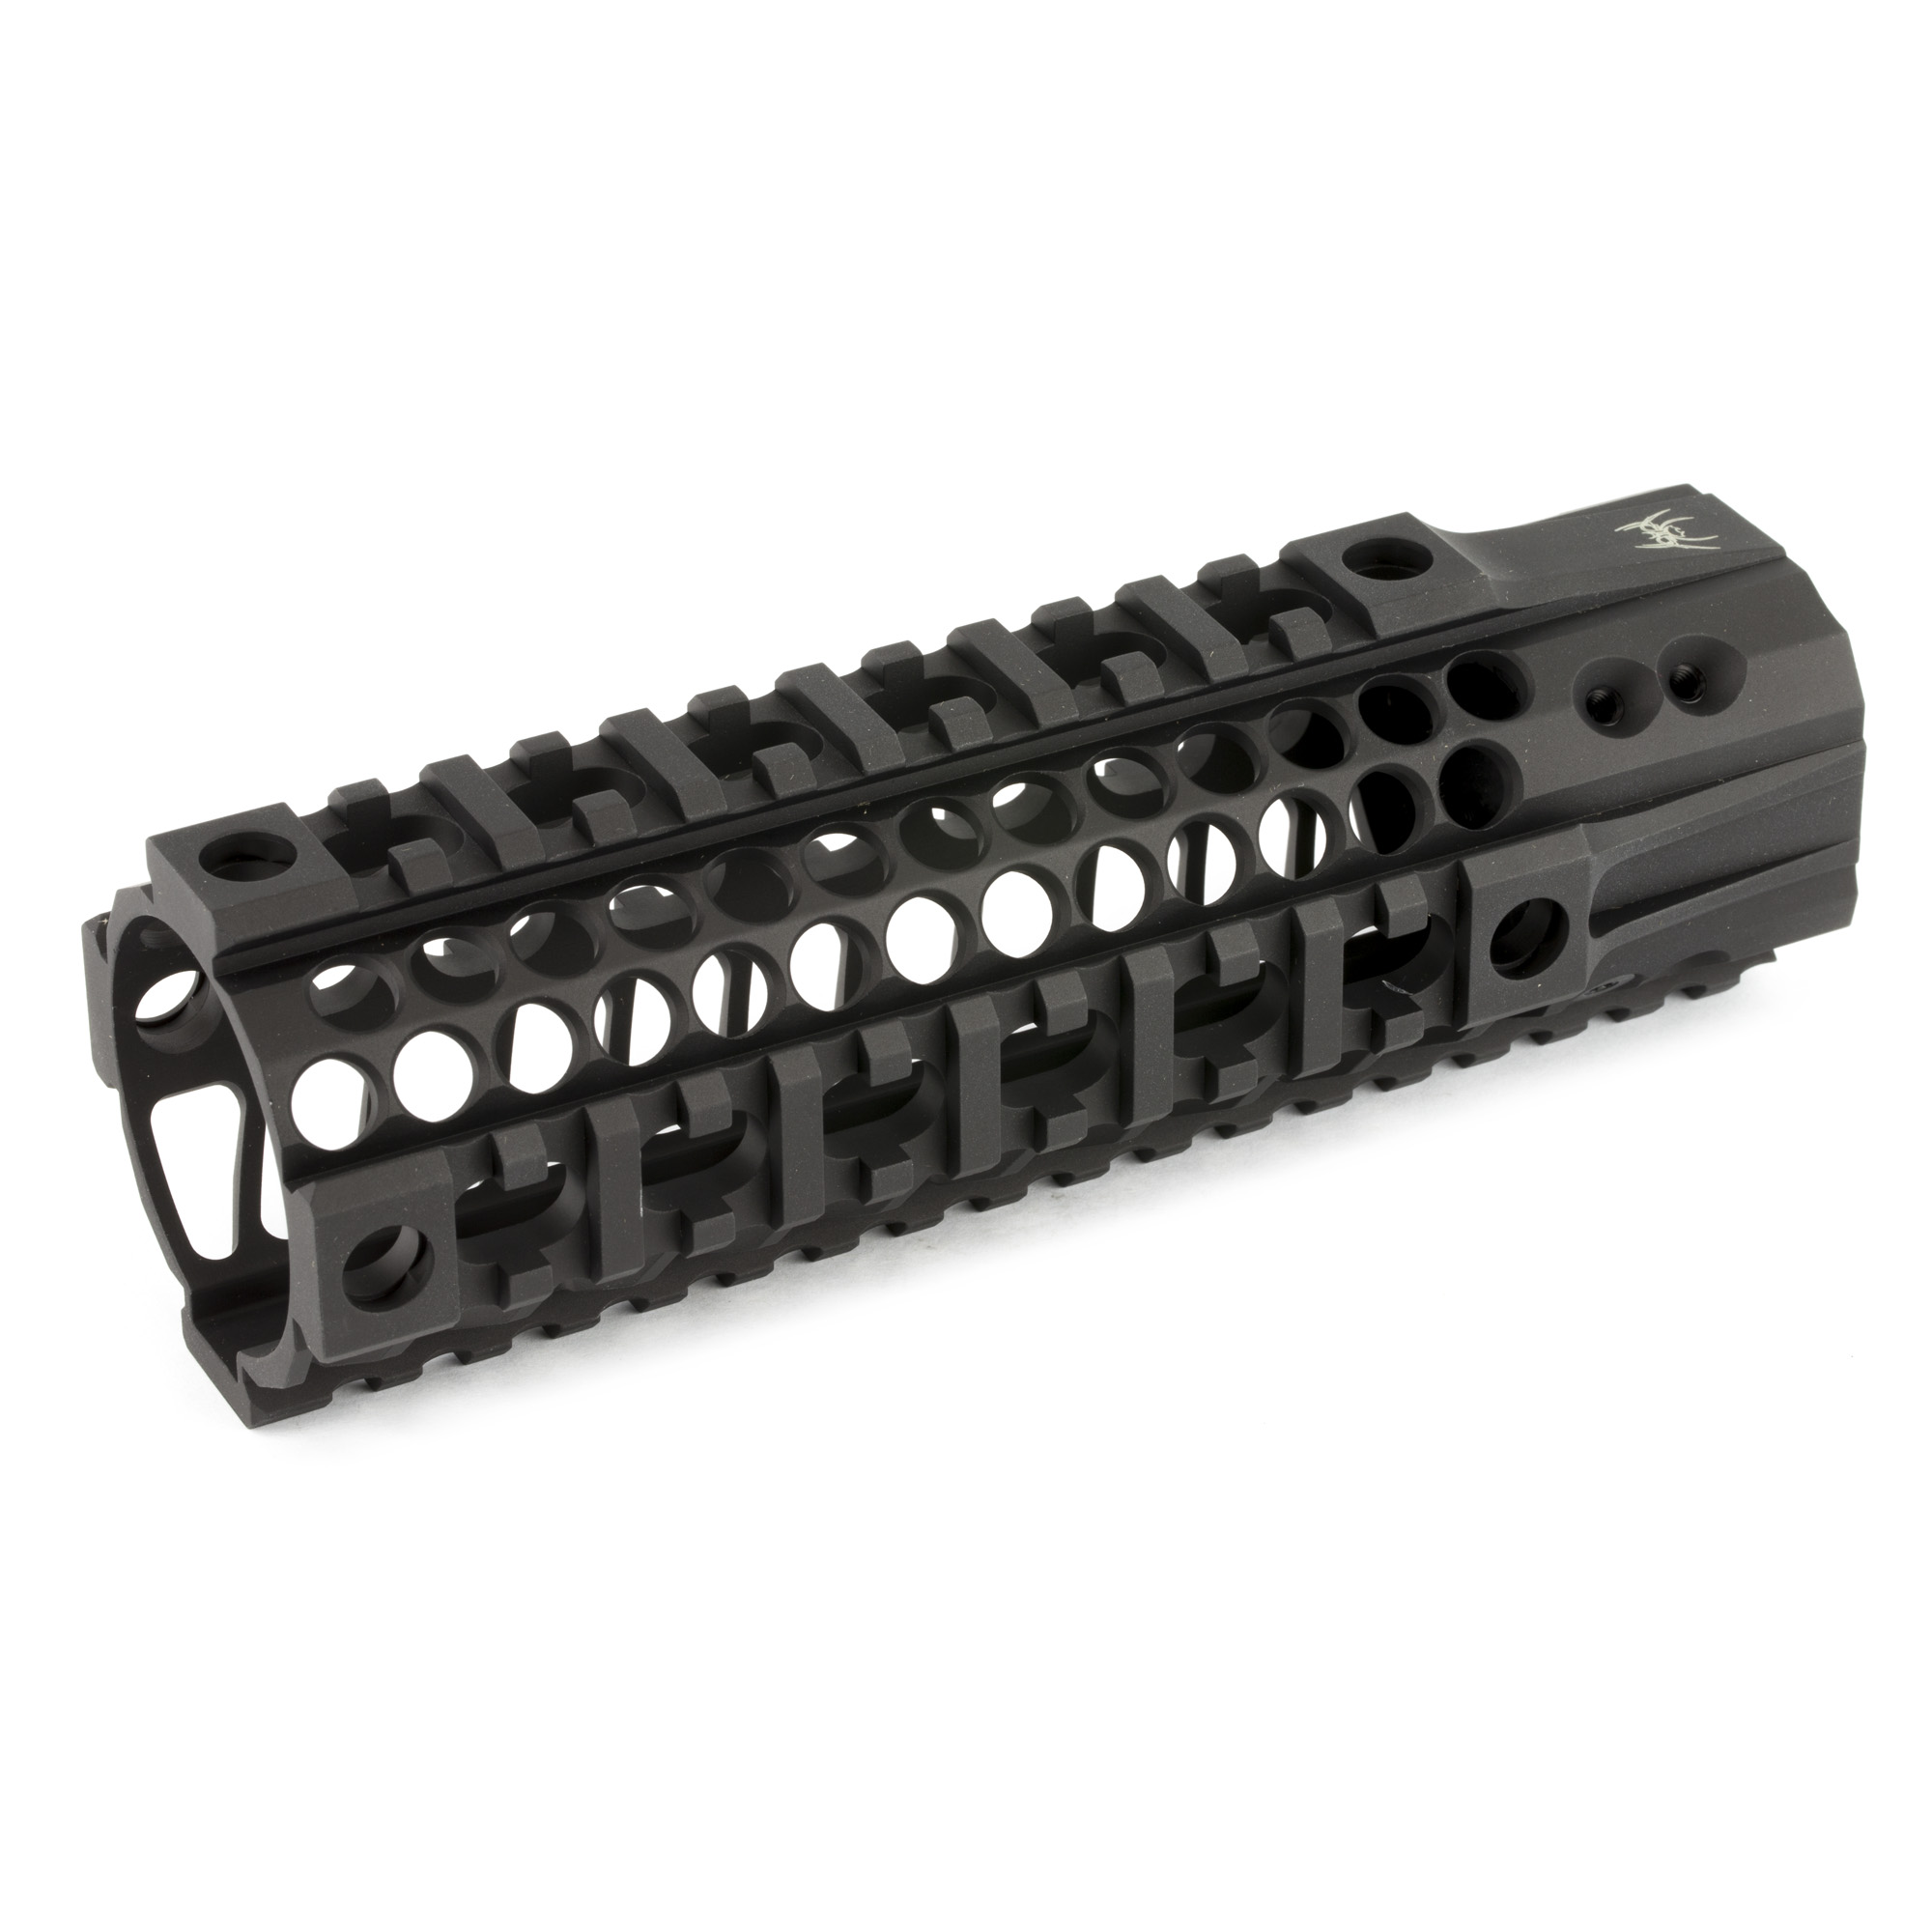 "The Spike's Tactical LW BAR2 is a 1pc free floating quad-rail that is machined from 6061-T6 aluminum with a barrel nut machined from 7075-T6 aluminum and finished in type III hardcoat anodizing on the rail and barrel nut. The main benefit of the BAR rail is to those who wish to have a suppressor inside of the rail. The BAR rail also offers excellent heat ventilation"" built in anti-rotation tabs to keep the rail and even the barrel nut from coming loose."